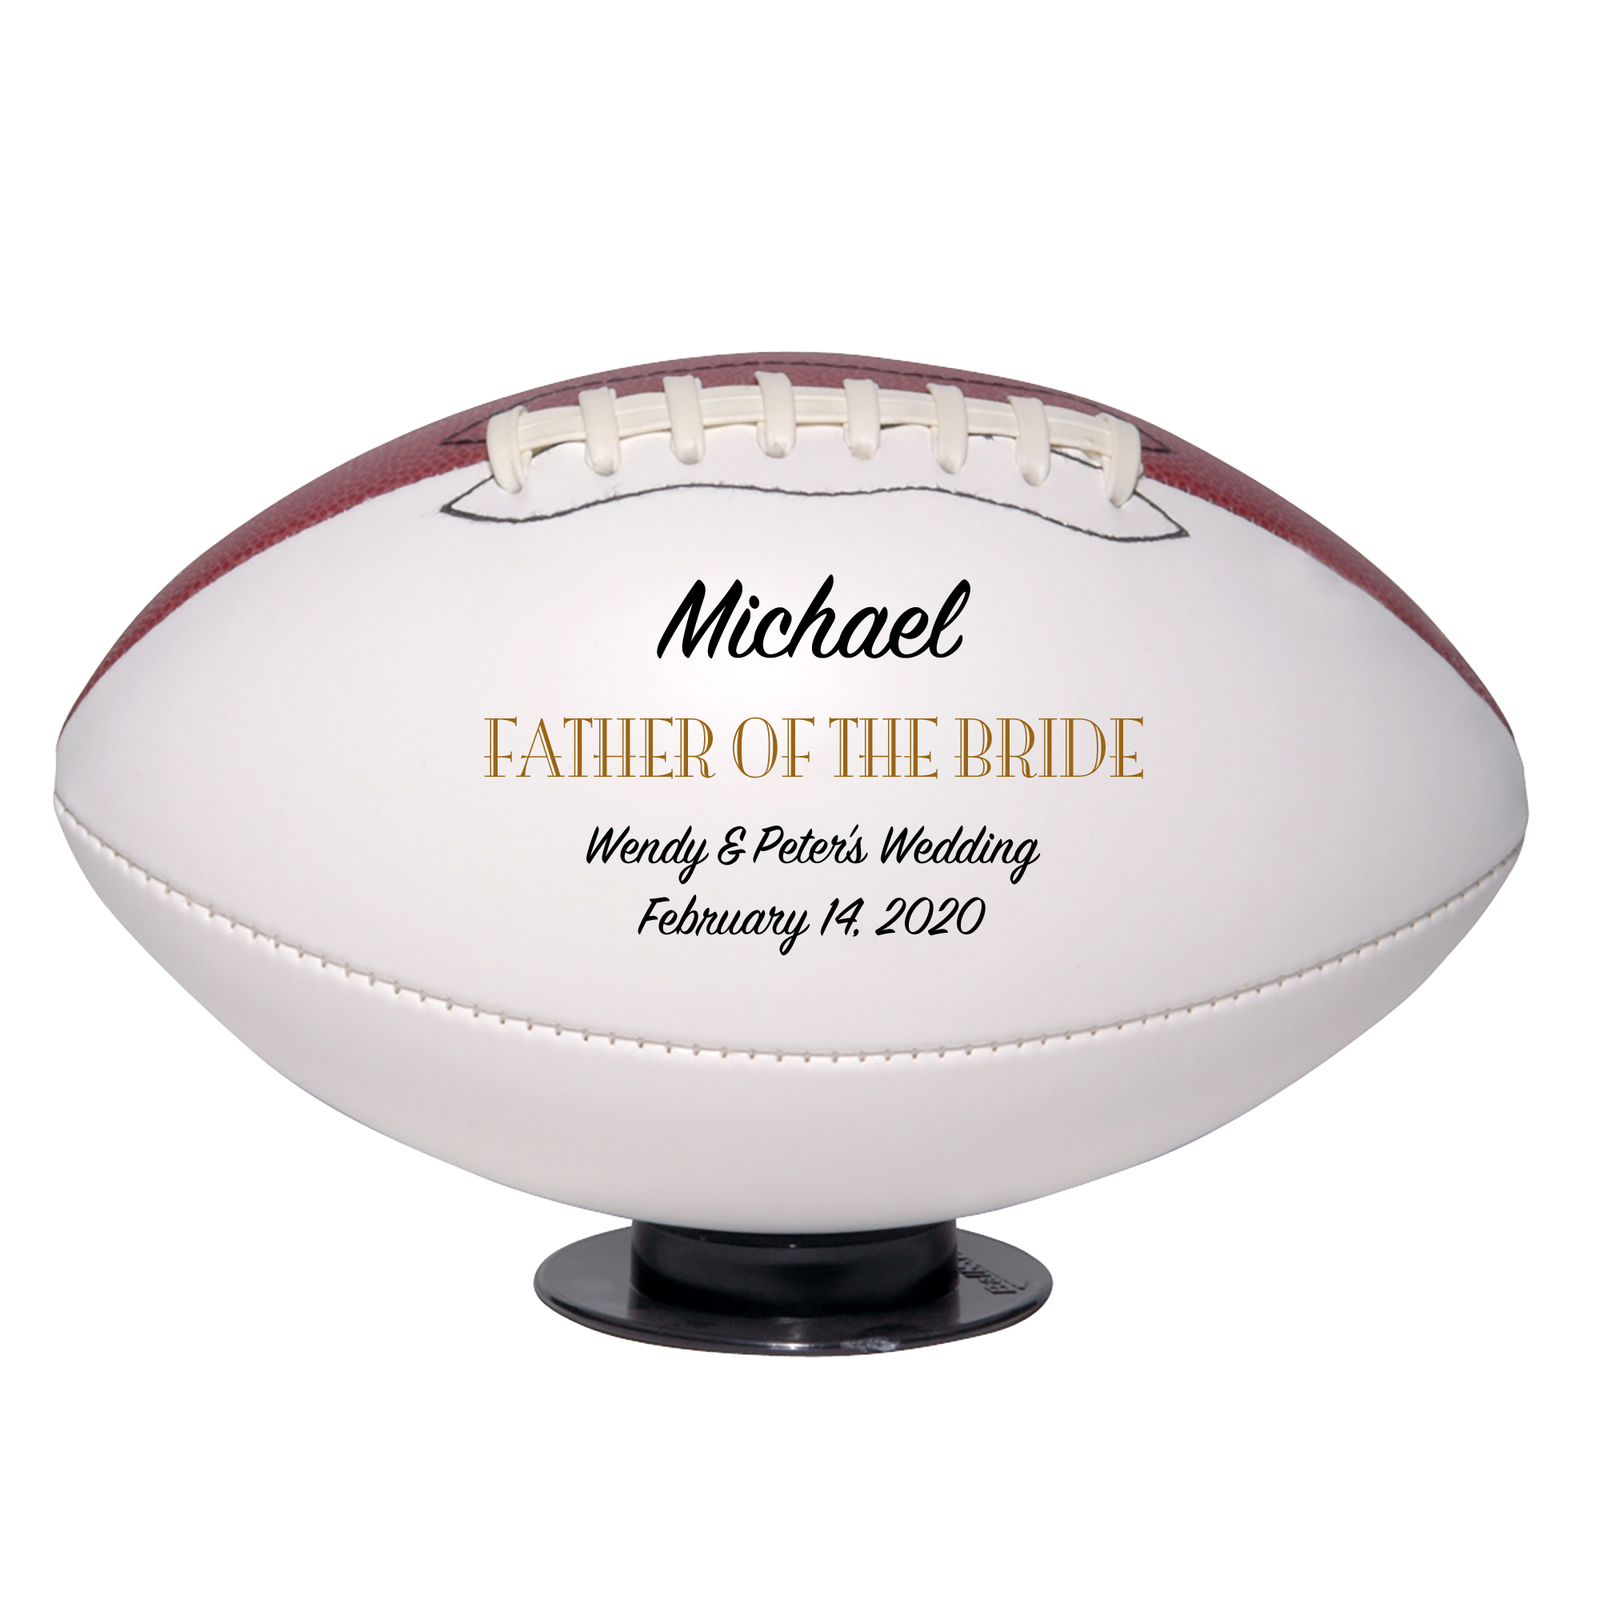 Primary image for Father of the Bride Regulation Football Wedding Gift -Personalized Wedding Favor